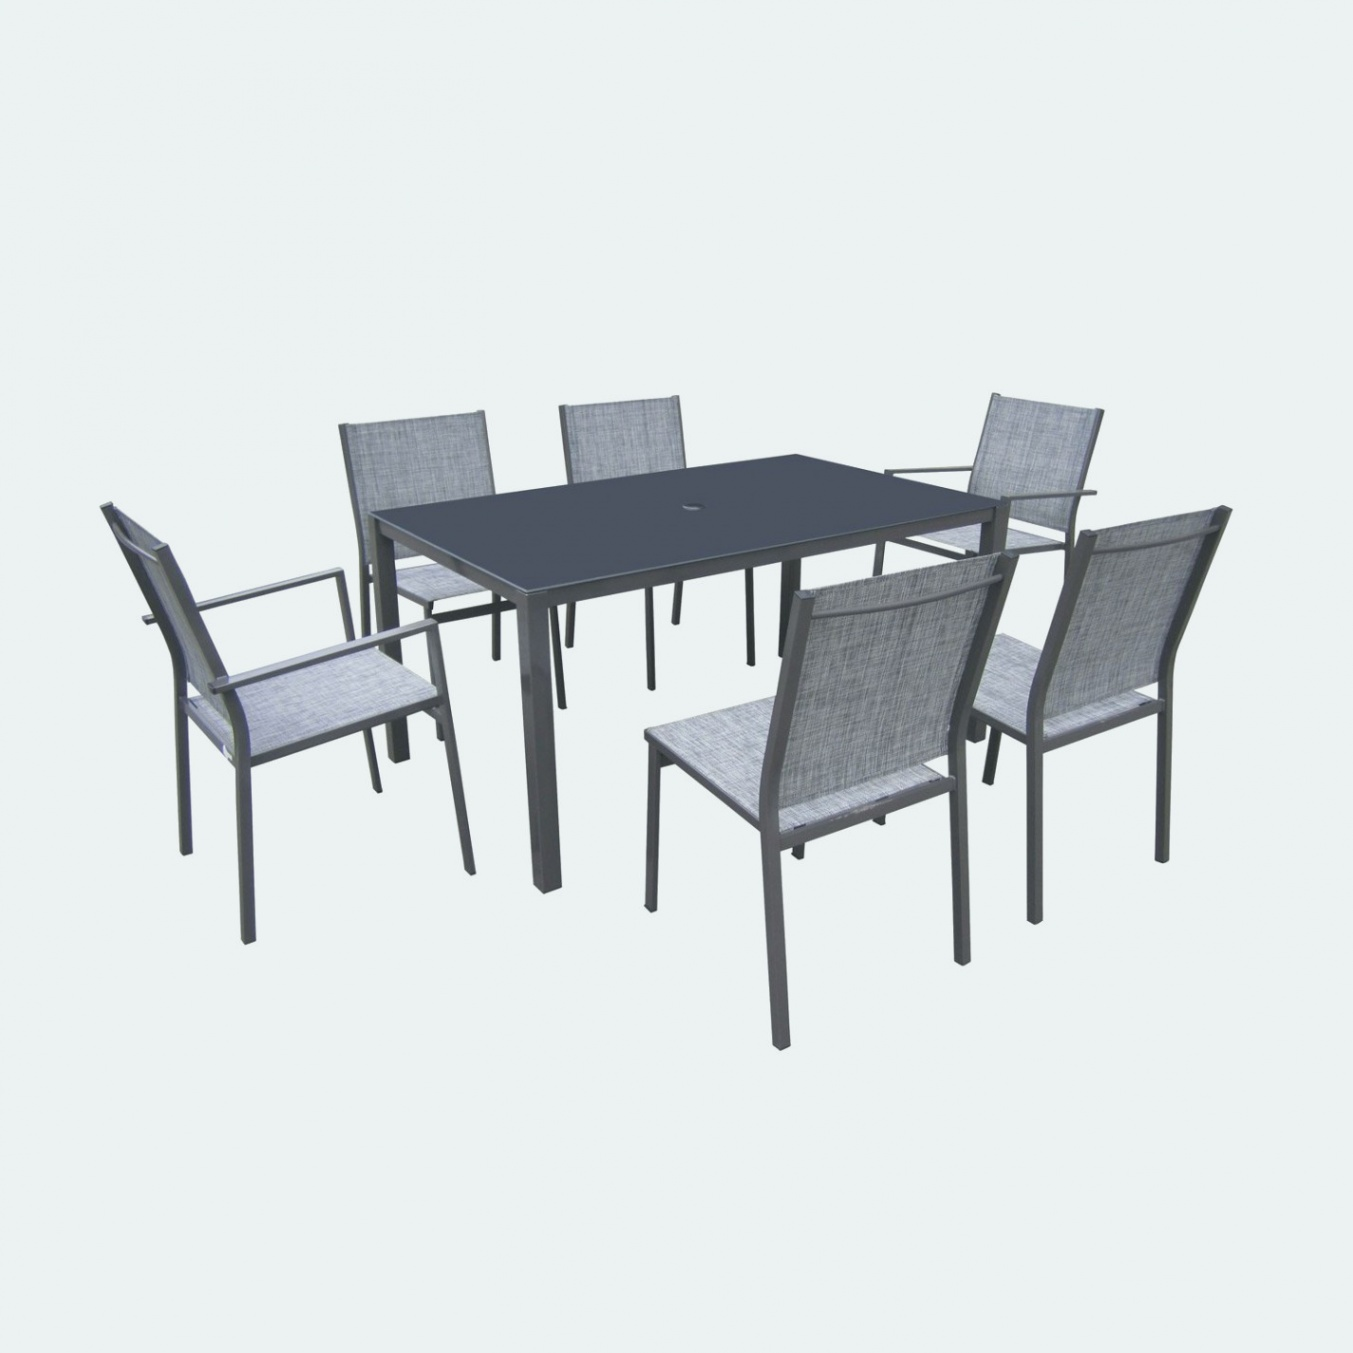 Table En Fer Table En Fer Table De Jardin En Fer Lovely Table Salon